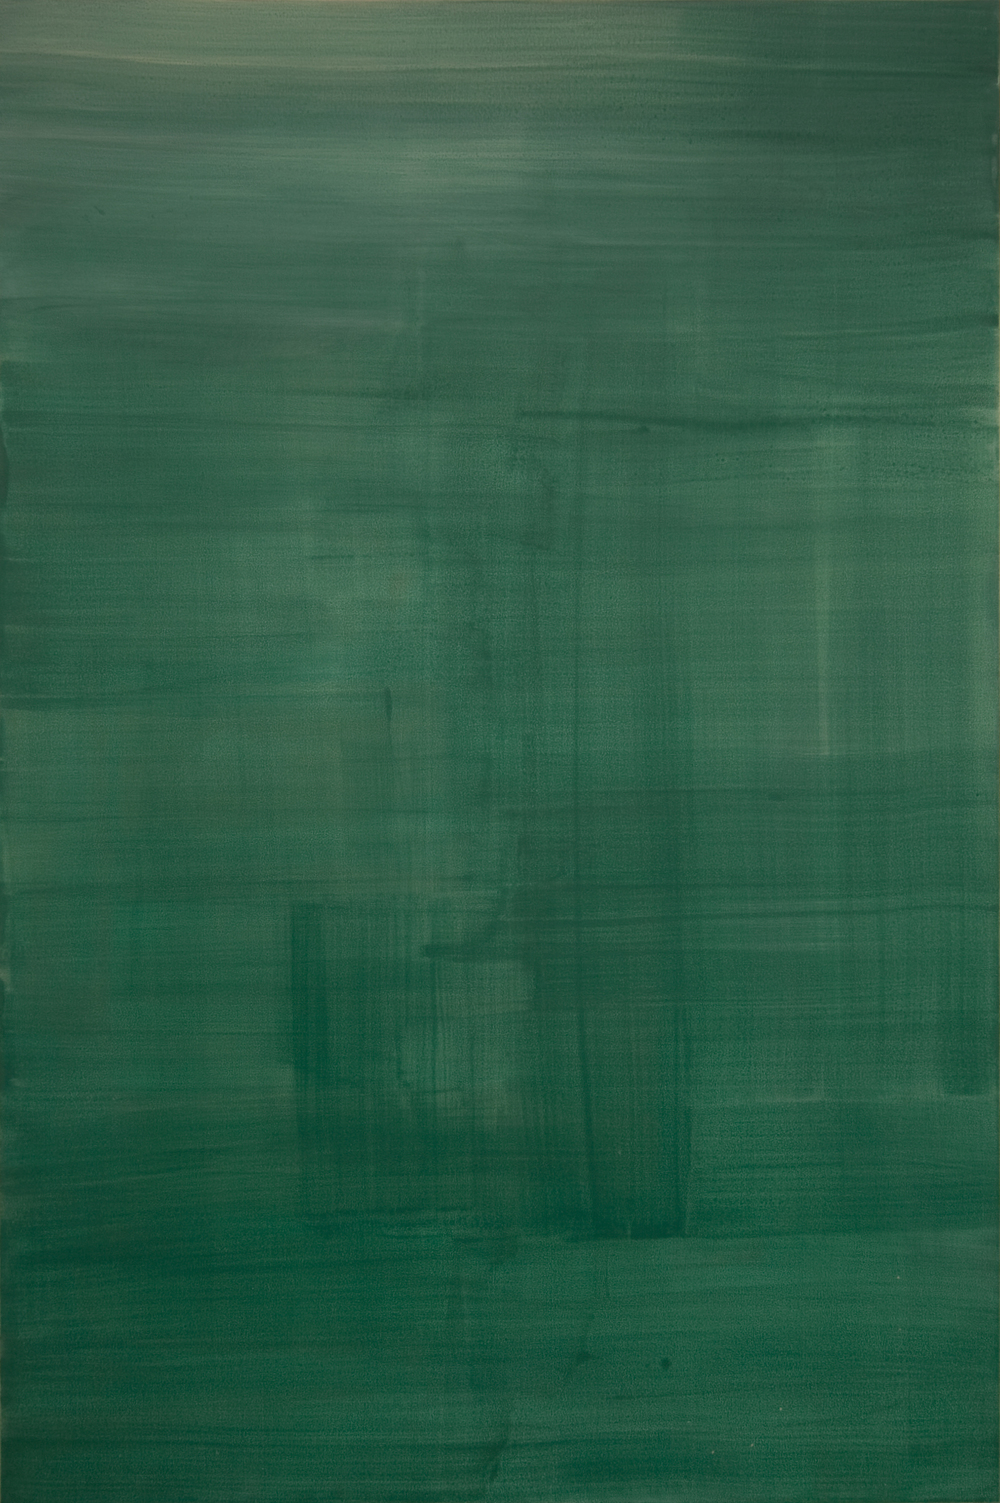 2012, acrylic on canvas, 150 x 225 cm (59 x 88 1/2 in)